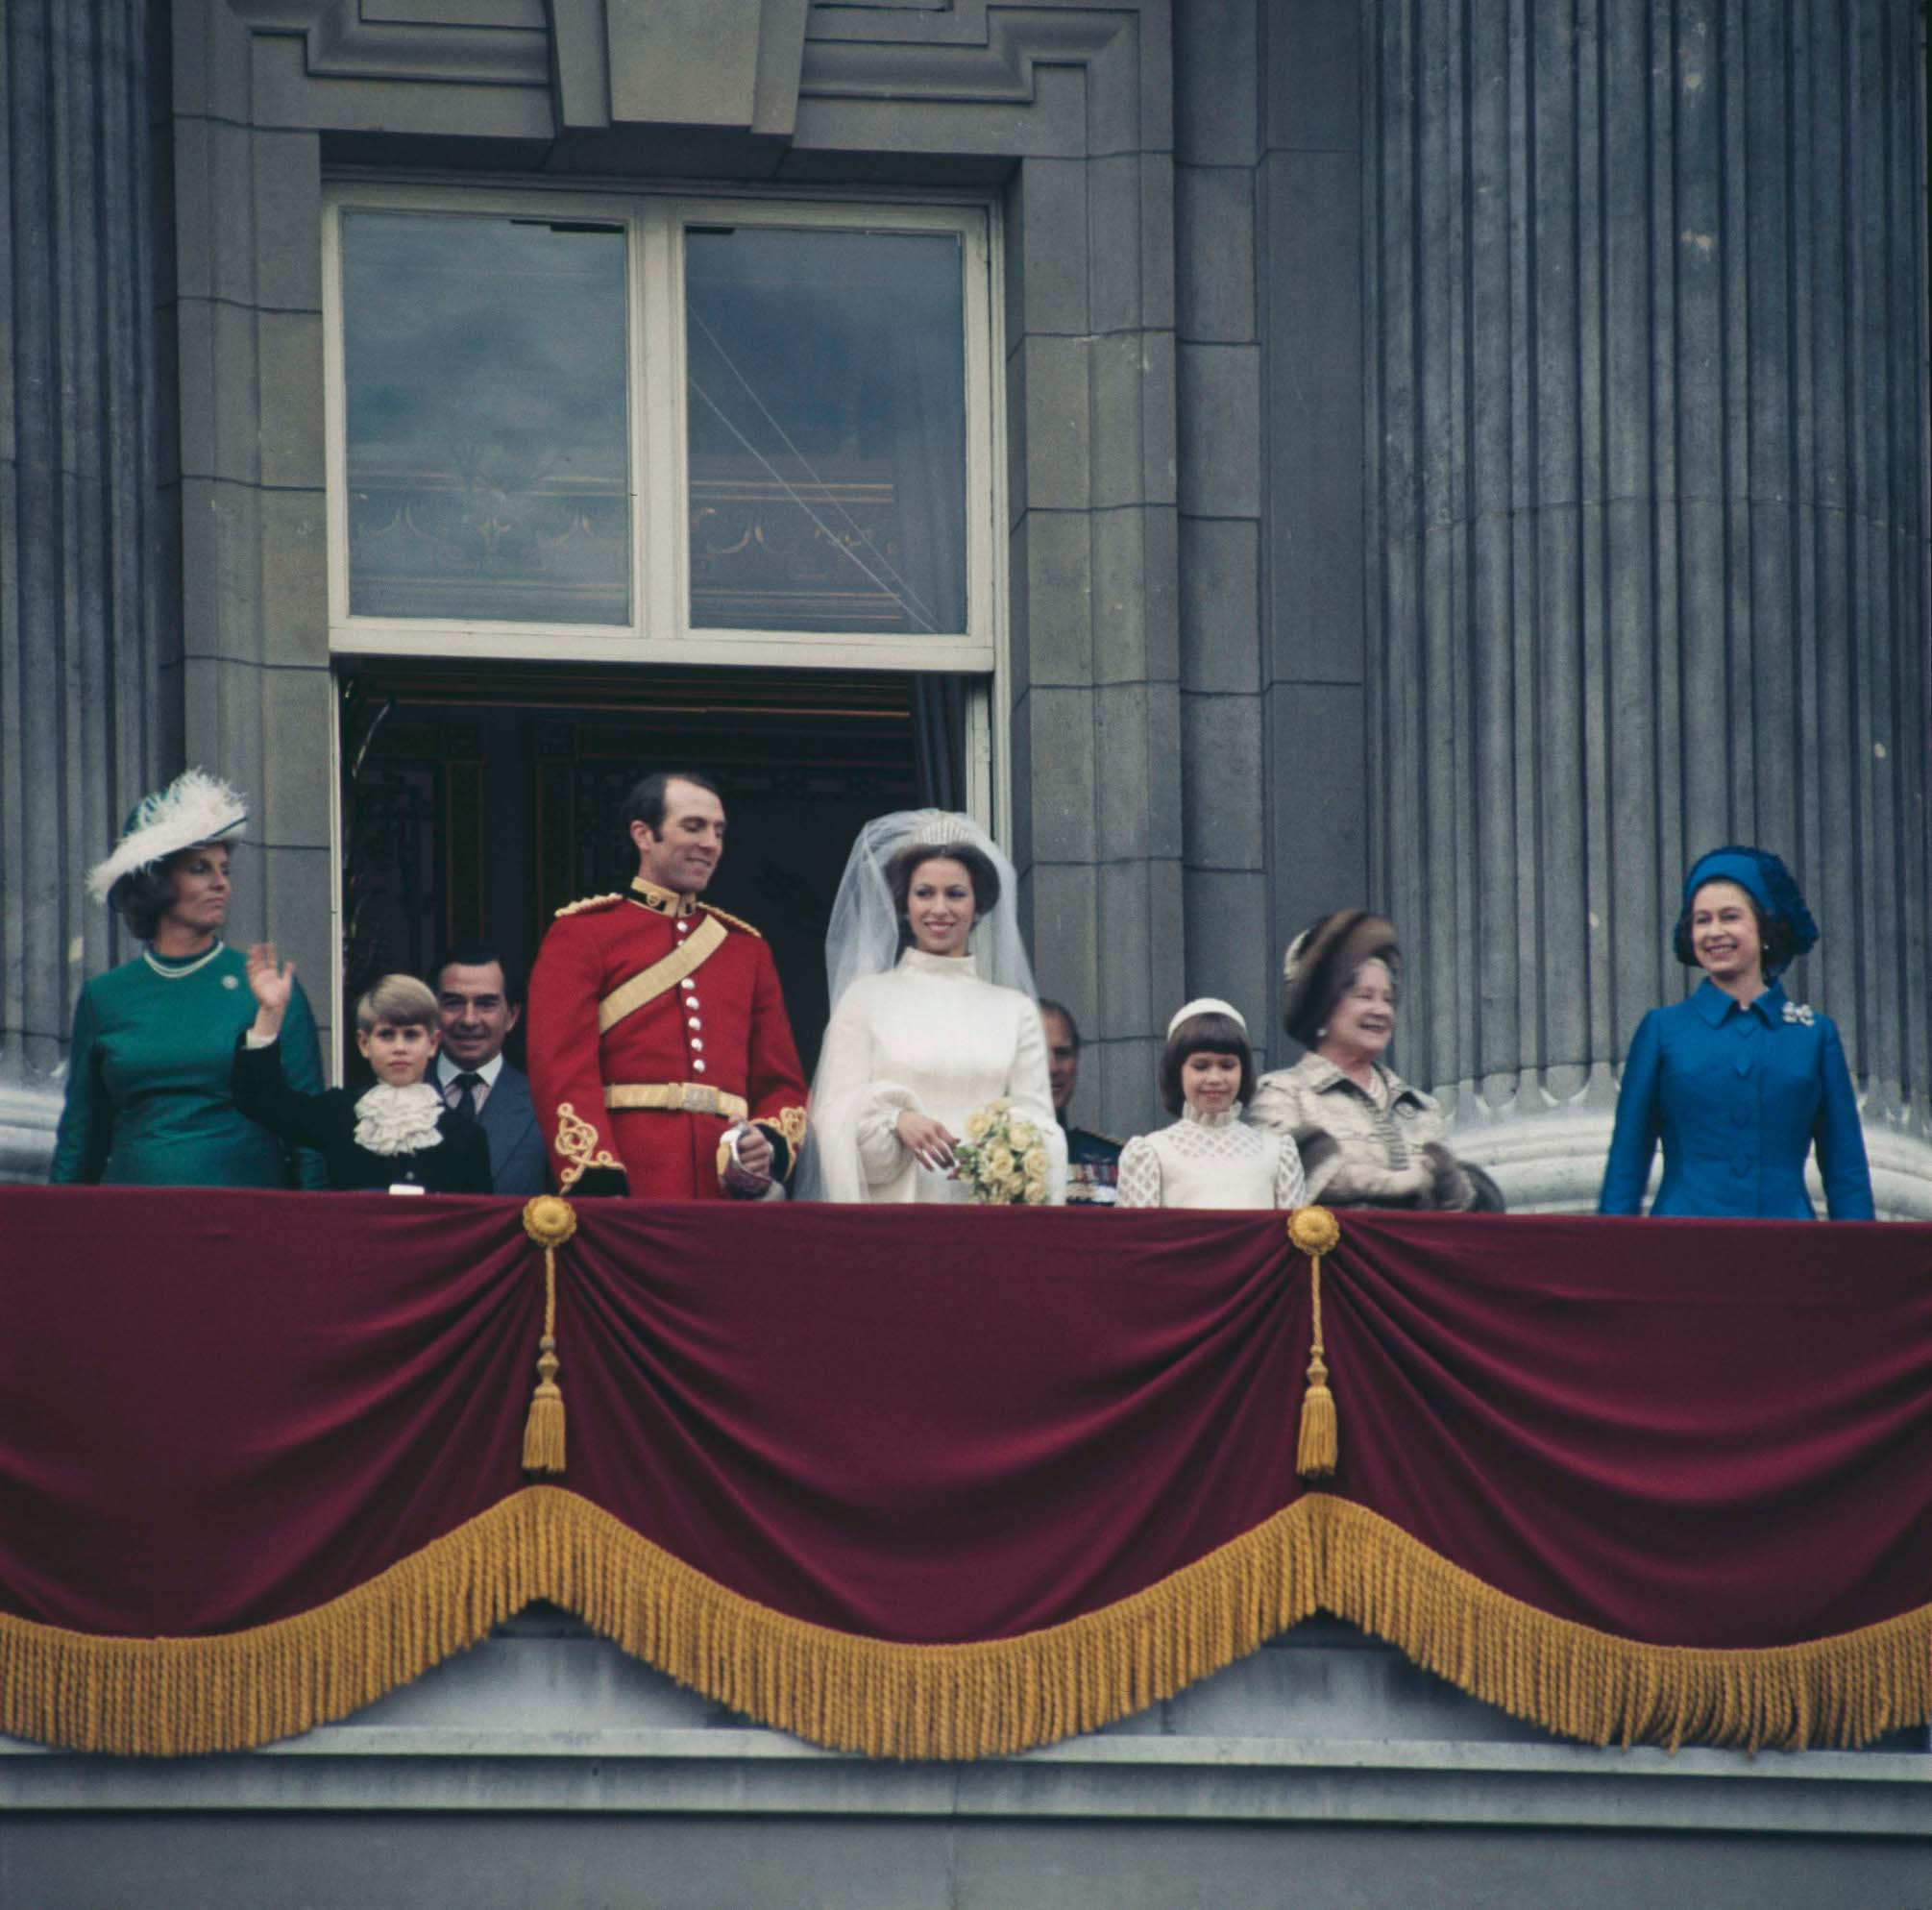 Anne, the Princess Royal and Mark Phillips pose on the balcony of Buckingham Palace in London, UK, after their wedding, 14th November 1973. Also pictured are Queen Elizabeth II and the Queen Mother.  (Photo by Fox Photos/Hulton Archive/Getty Images)